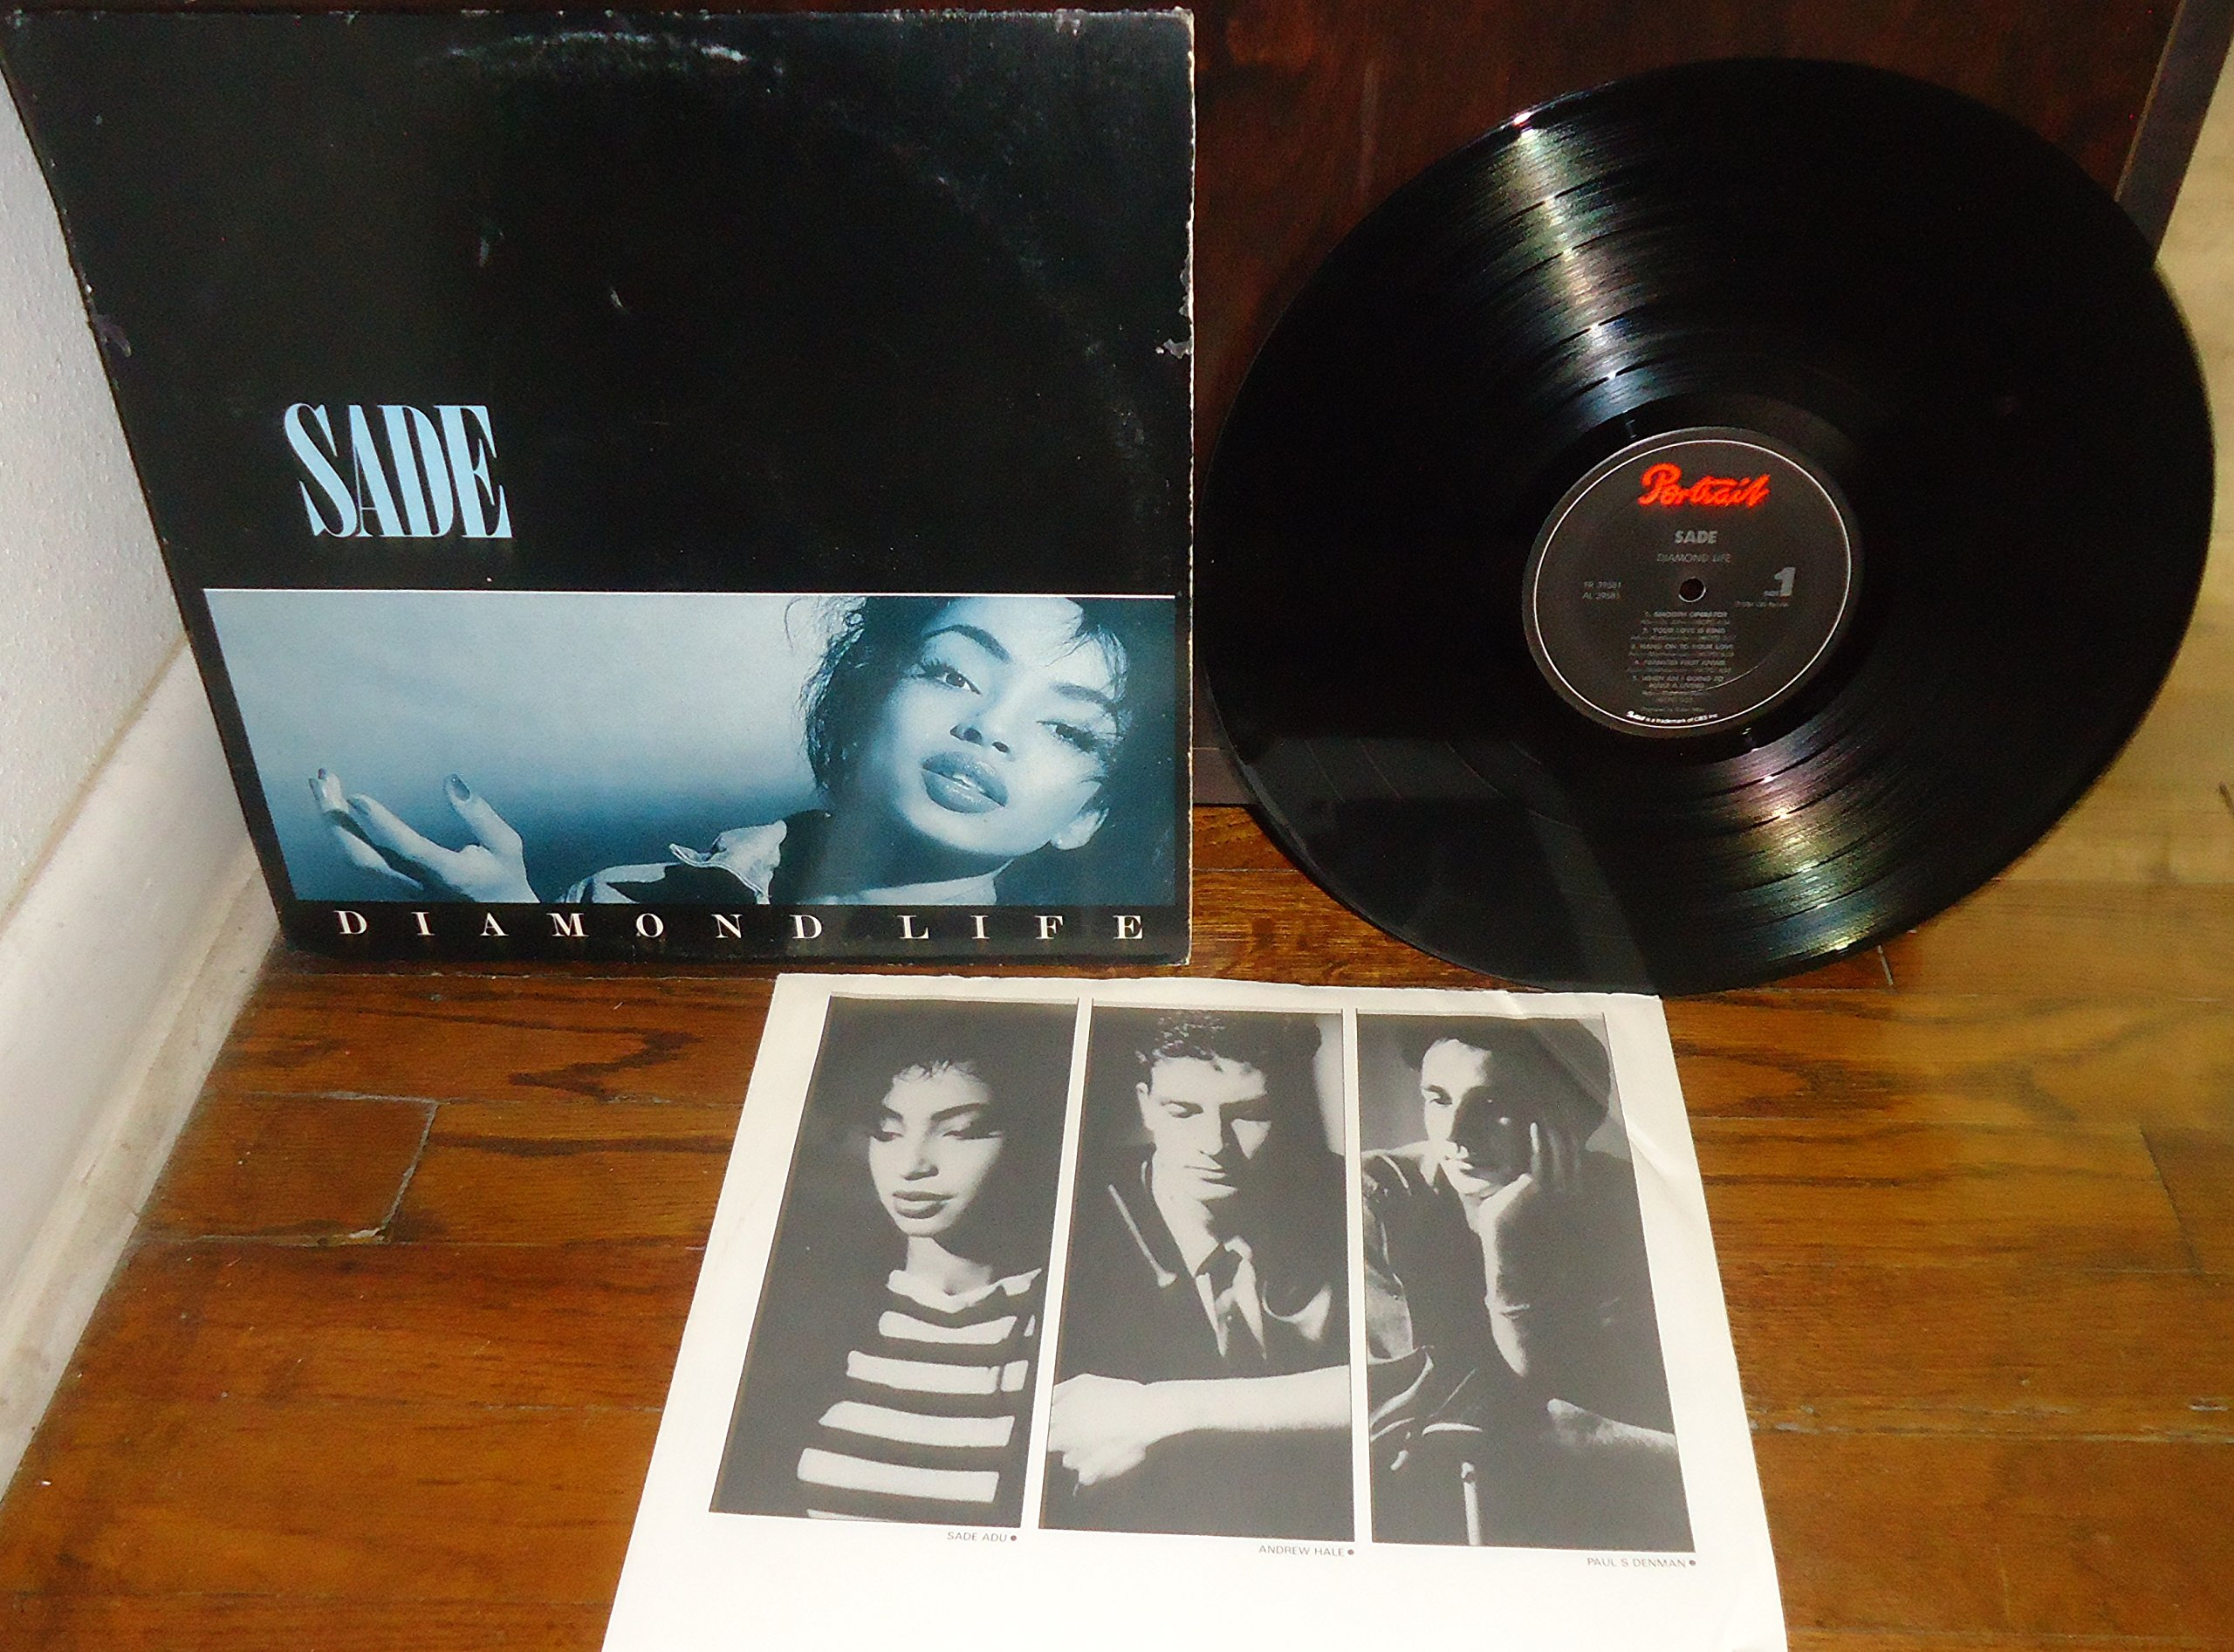 Sade - Diamond Life LP - 1st Original First Edition US Pressing Vinyl Record Complete with Inner Picture/Lyric Sleeve - Epic Records Catalog # FR 39581 - 1984 - Jazz - Funk - Soul Music VG+/VG++